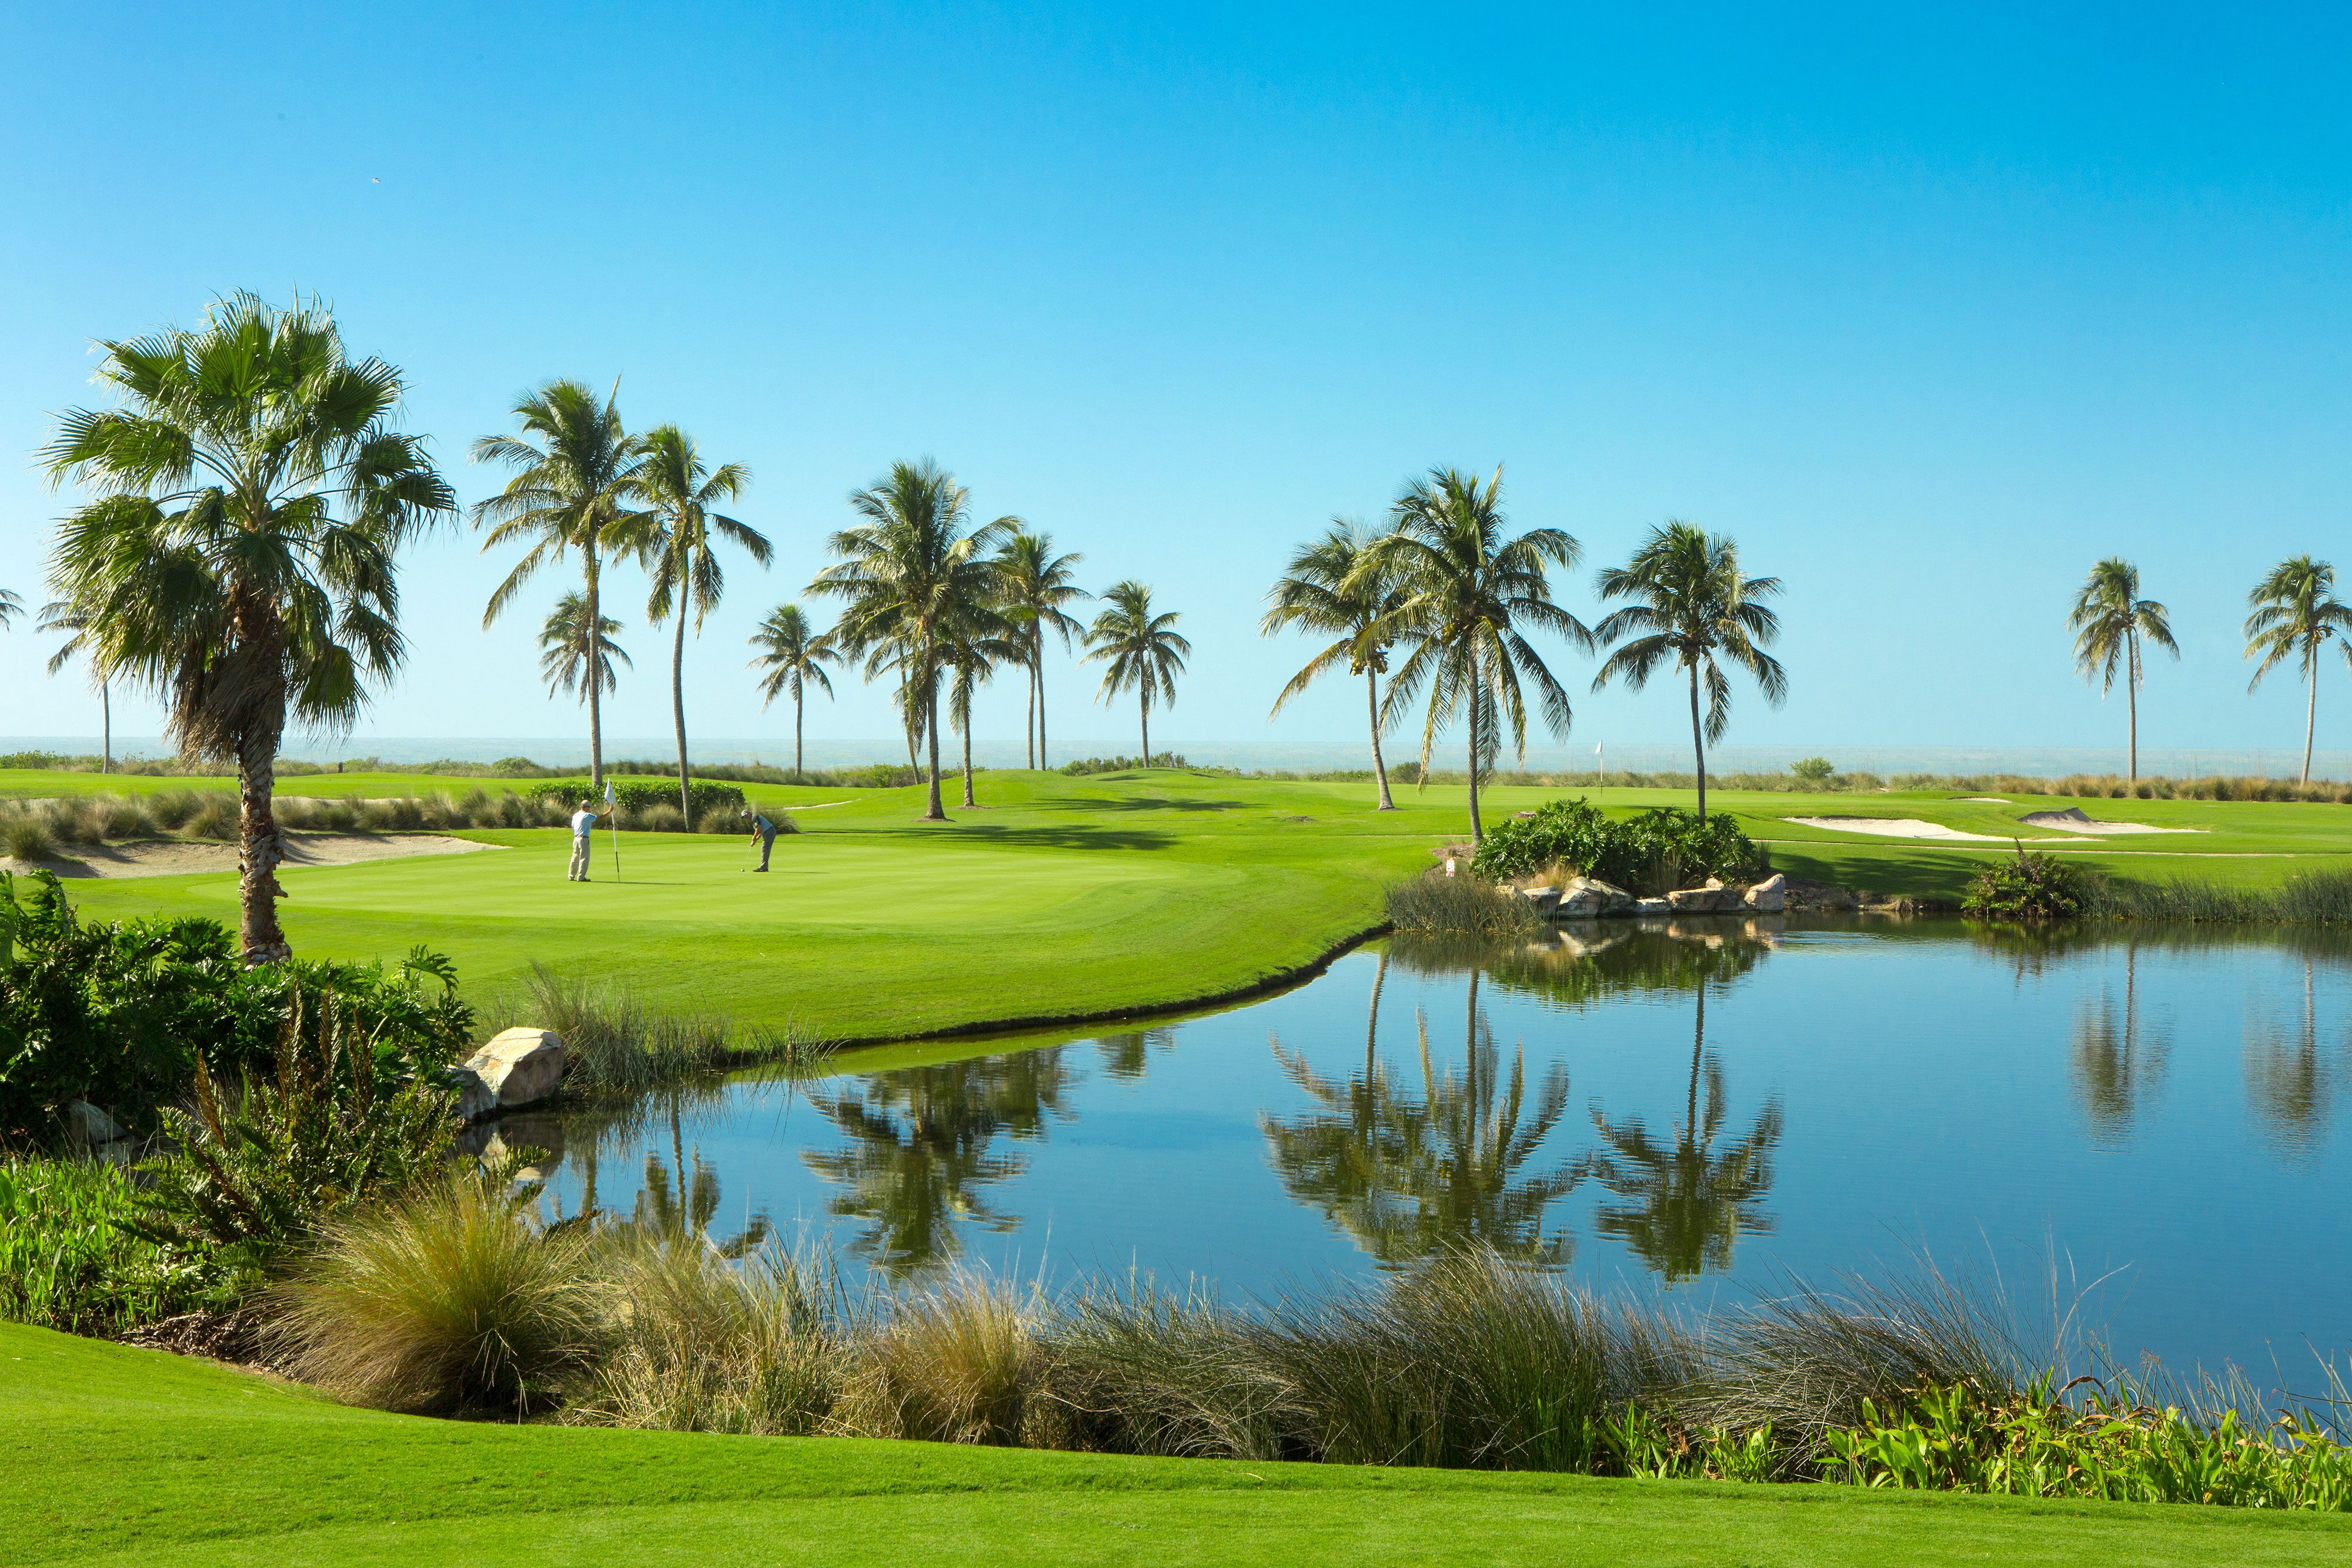 A stunning golf course in South Seas.